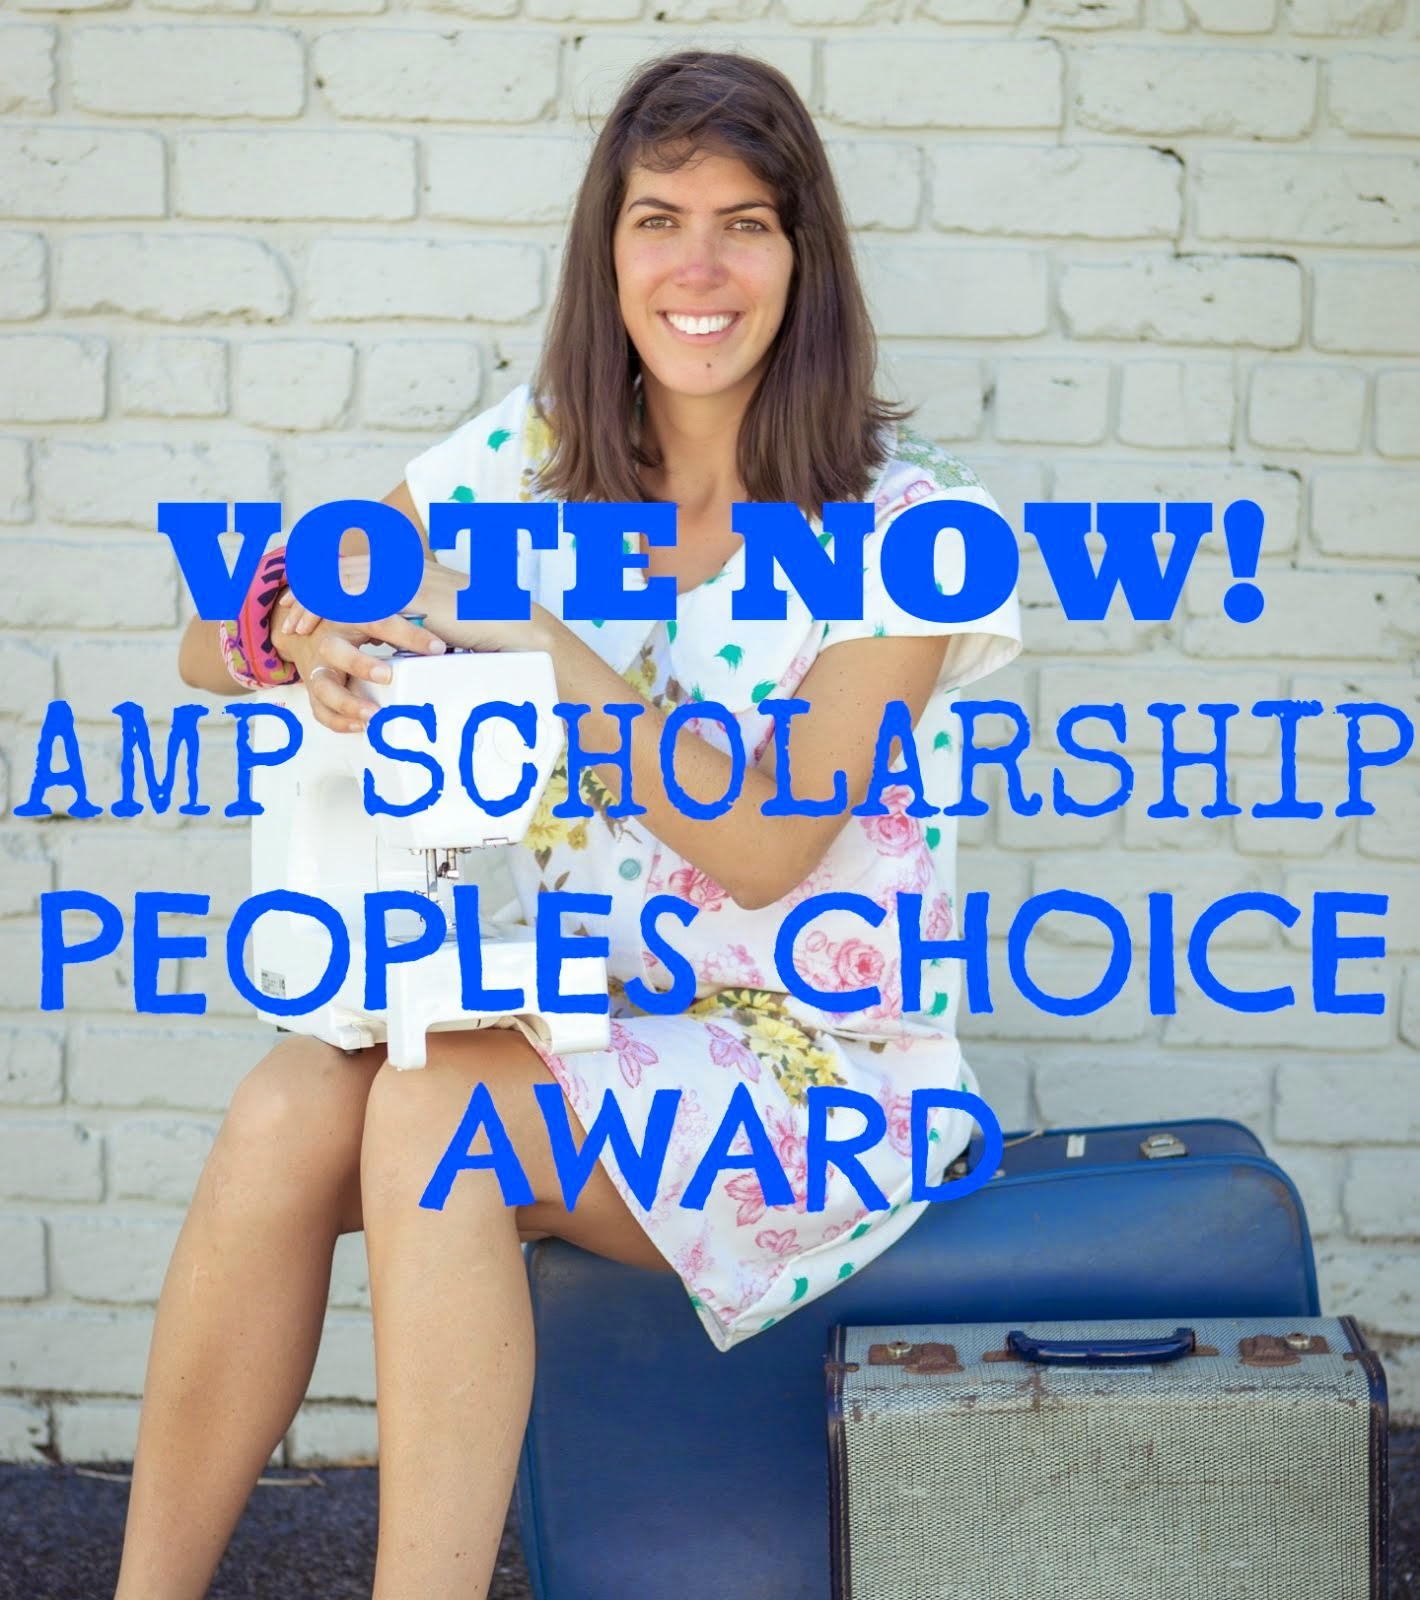 Sew love to have your vote!